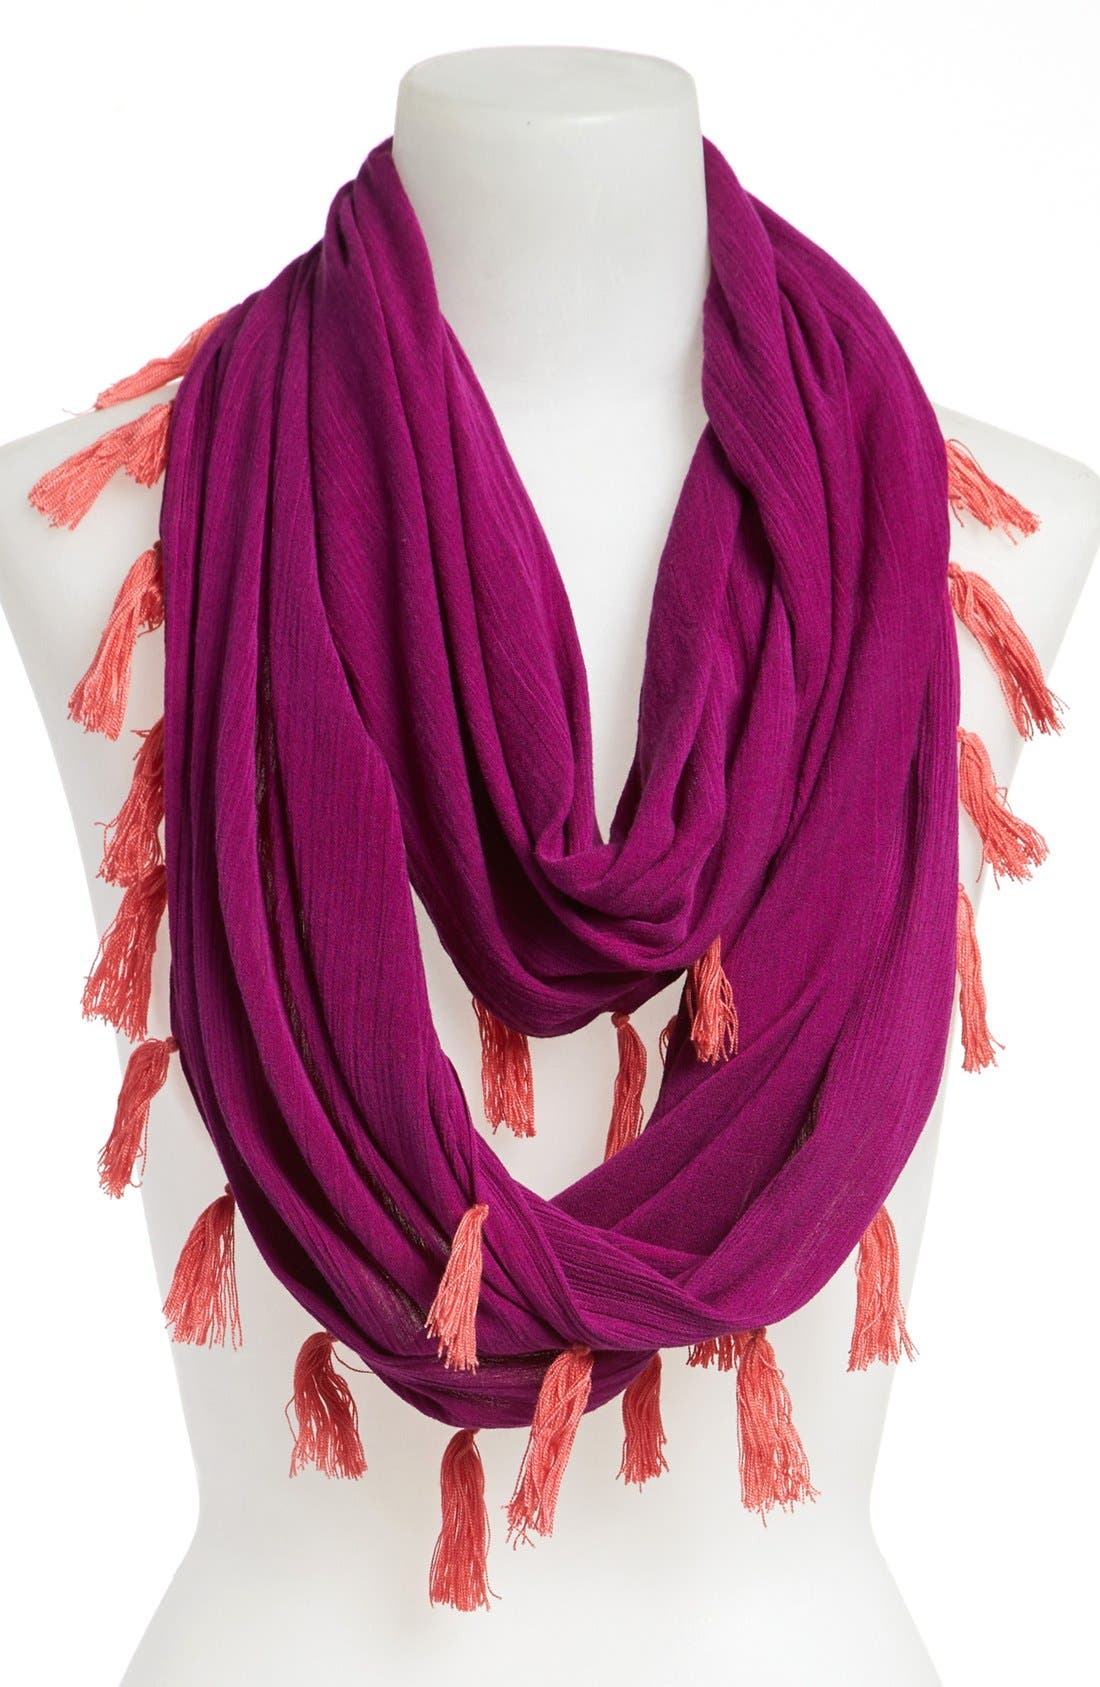 Main Image - Collection XIIX Tasseled Infinity Scarf